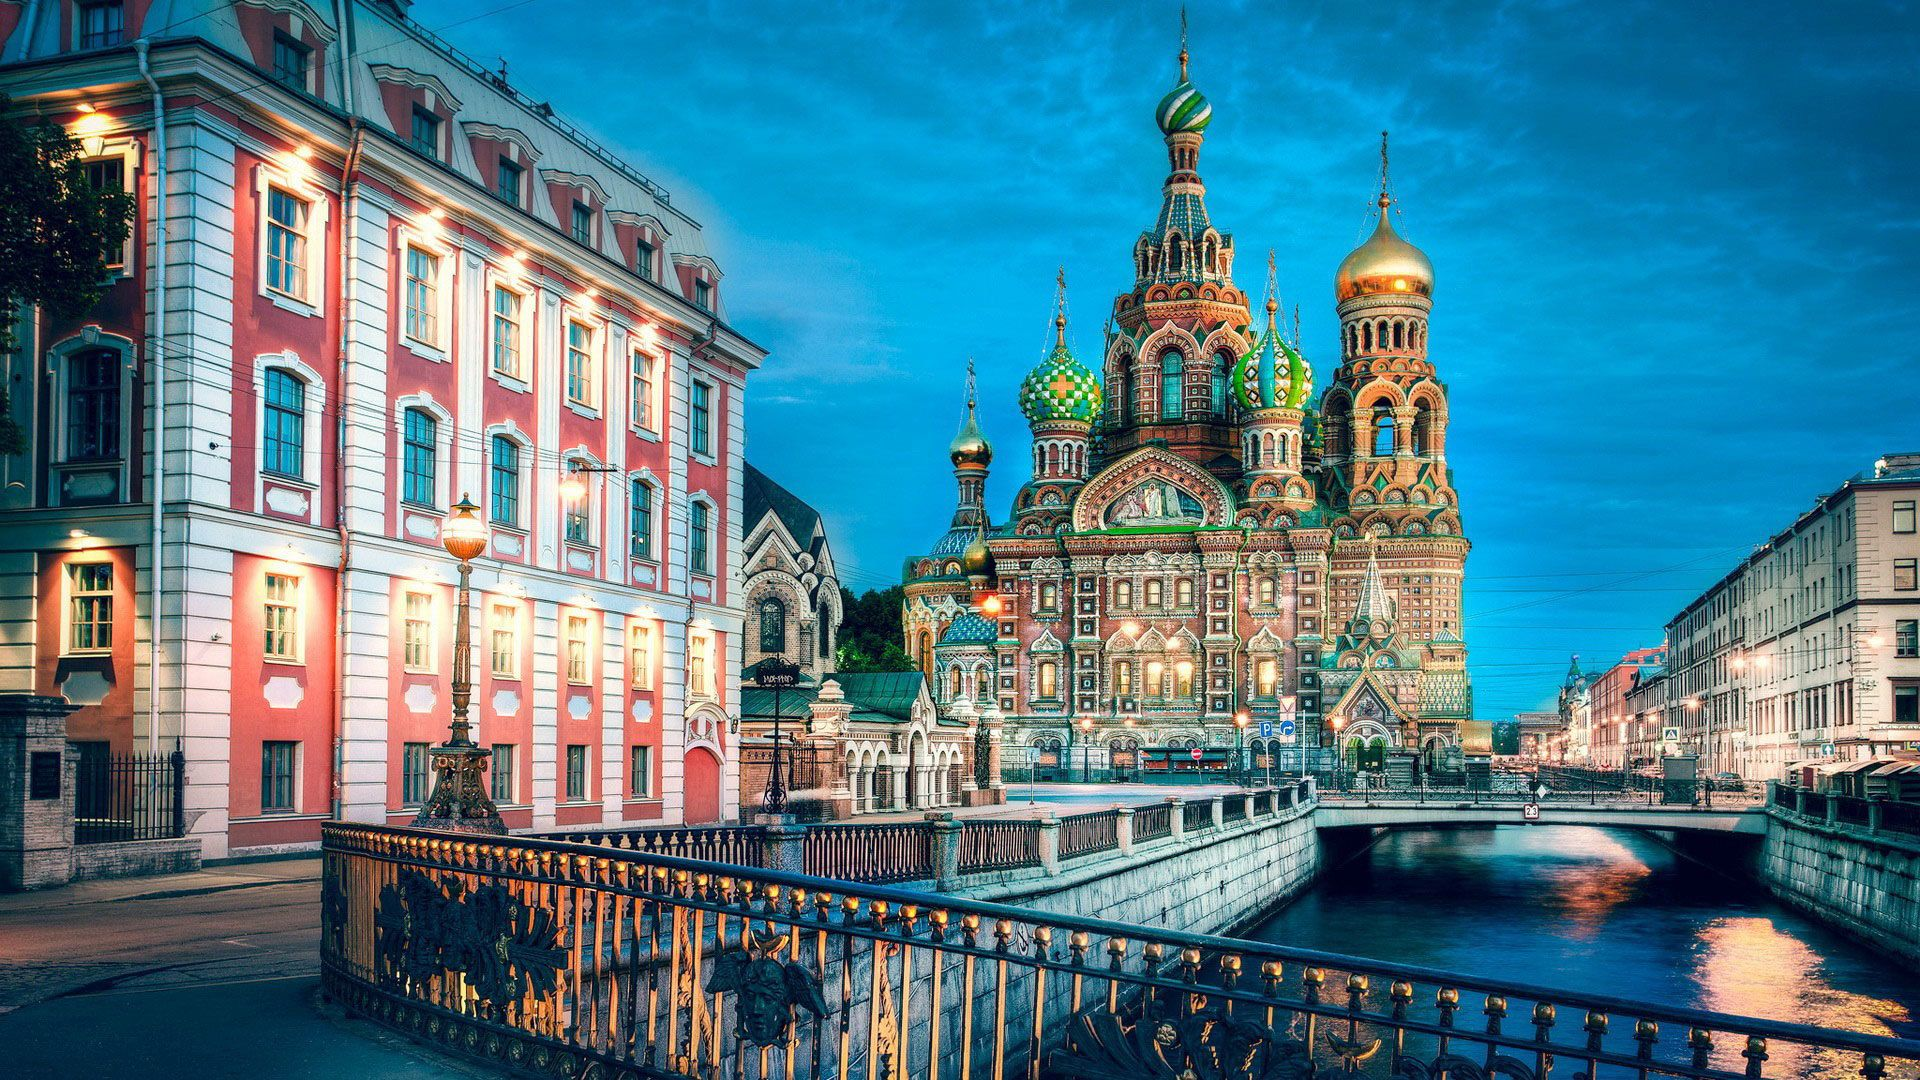 walk by The Church of the Savior on Spilled Blood during the evening in Saint Petersburg